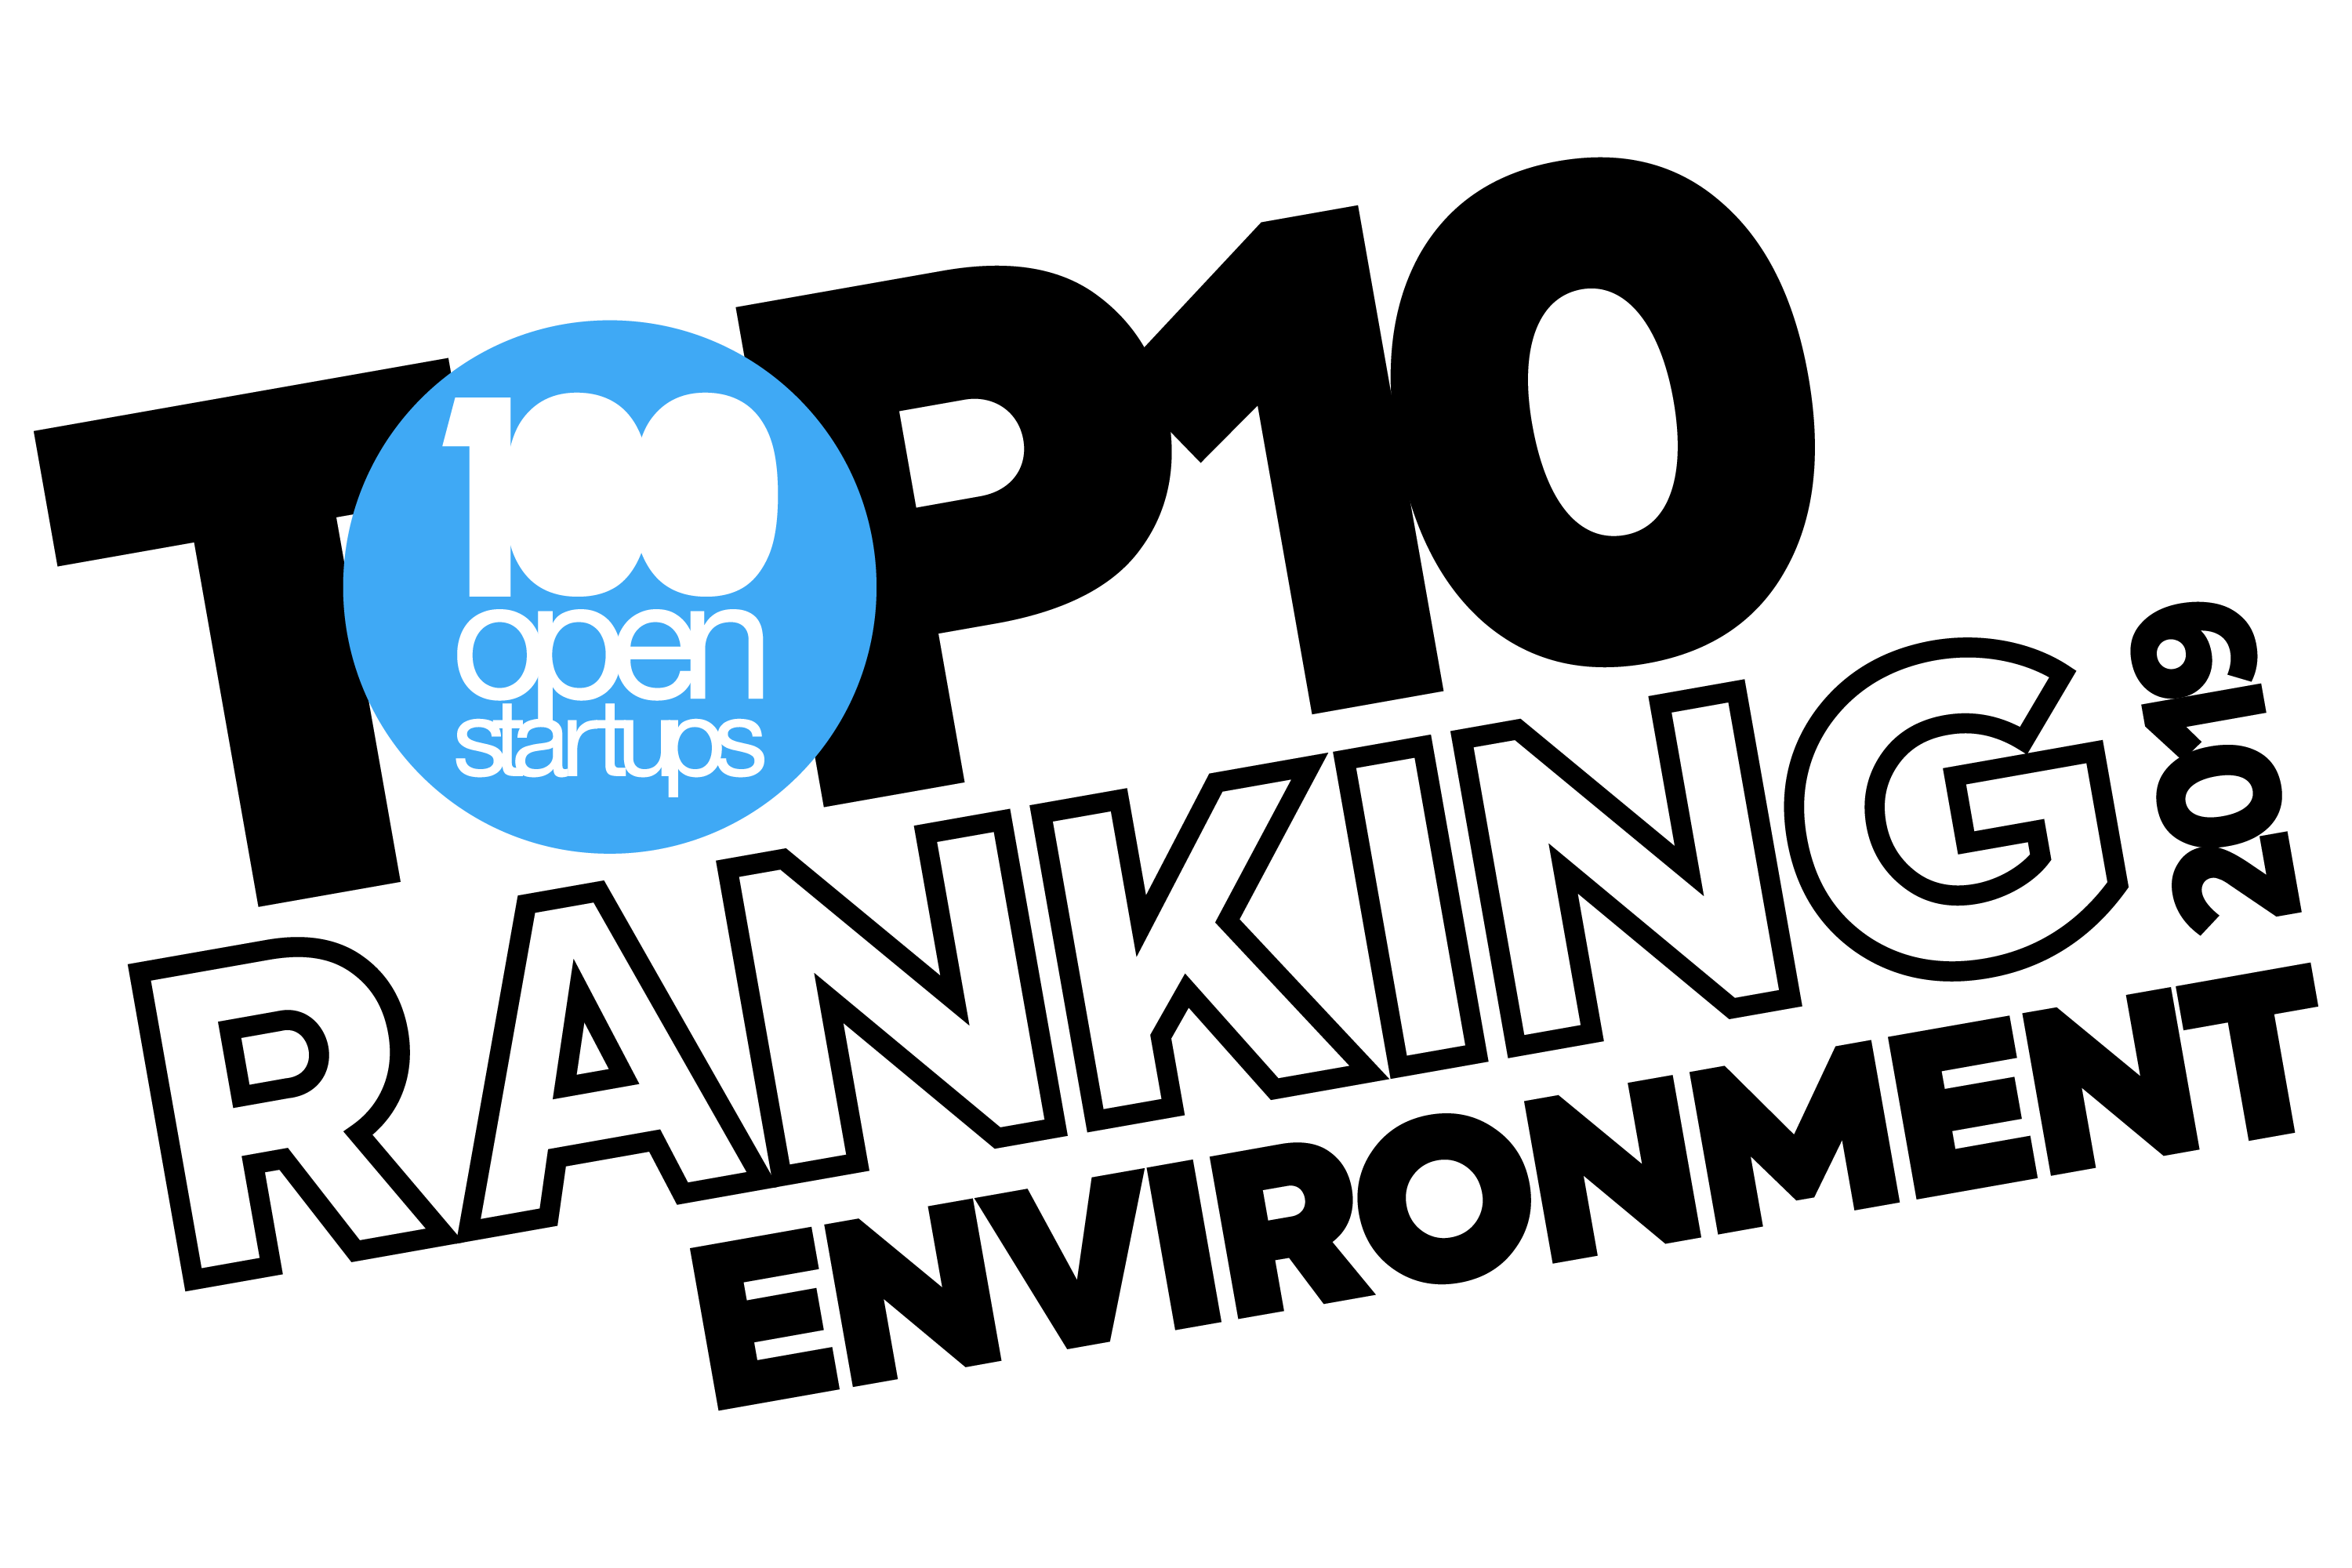 selo Top 10 Ranking Environment 2019 do 100 Open Startups